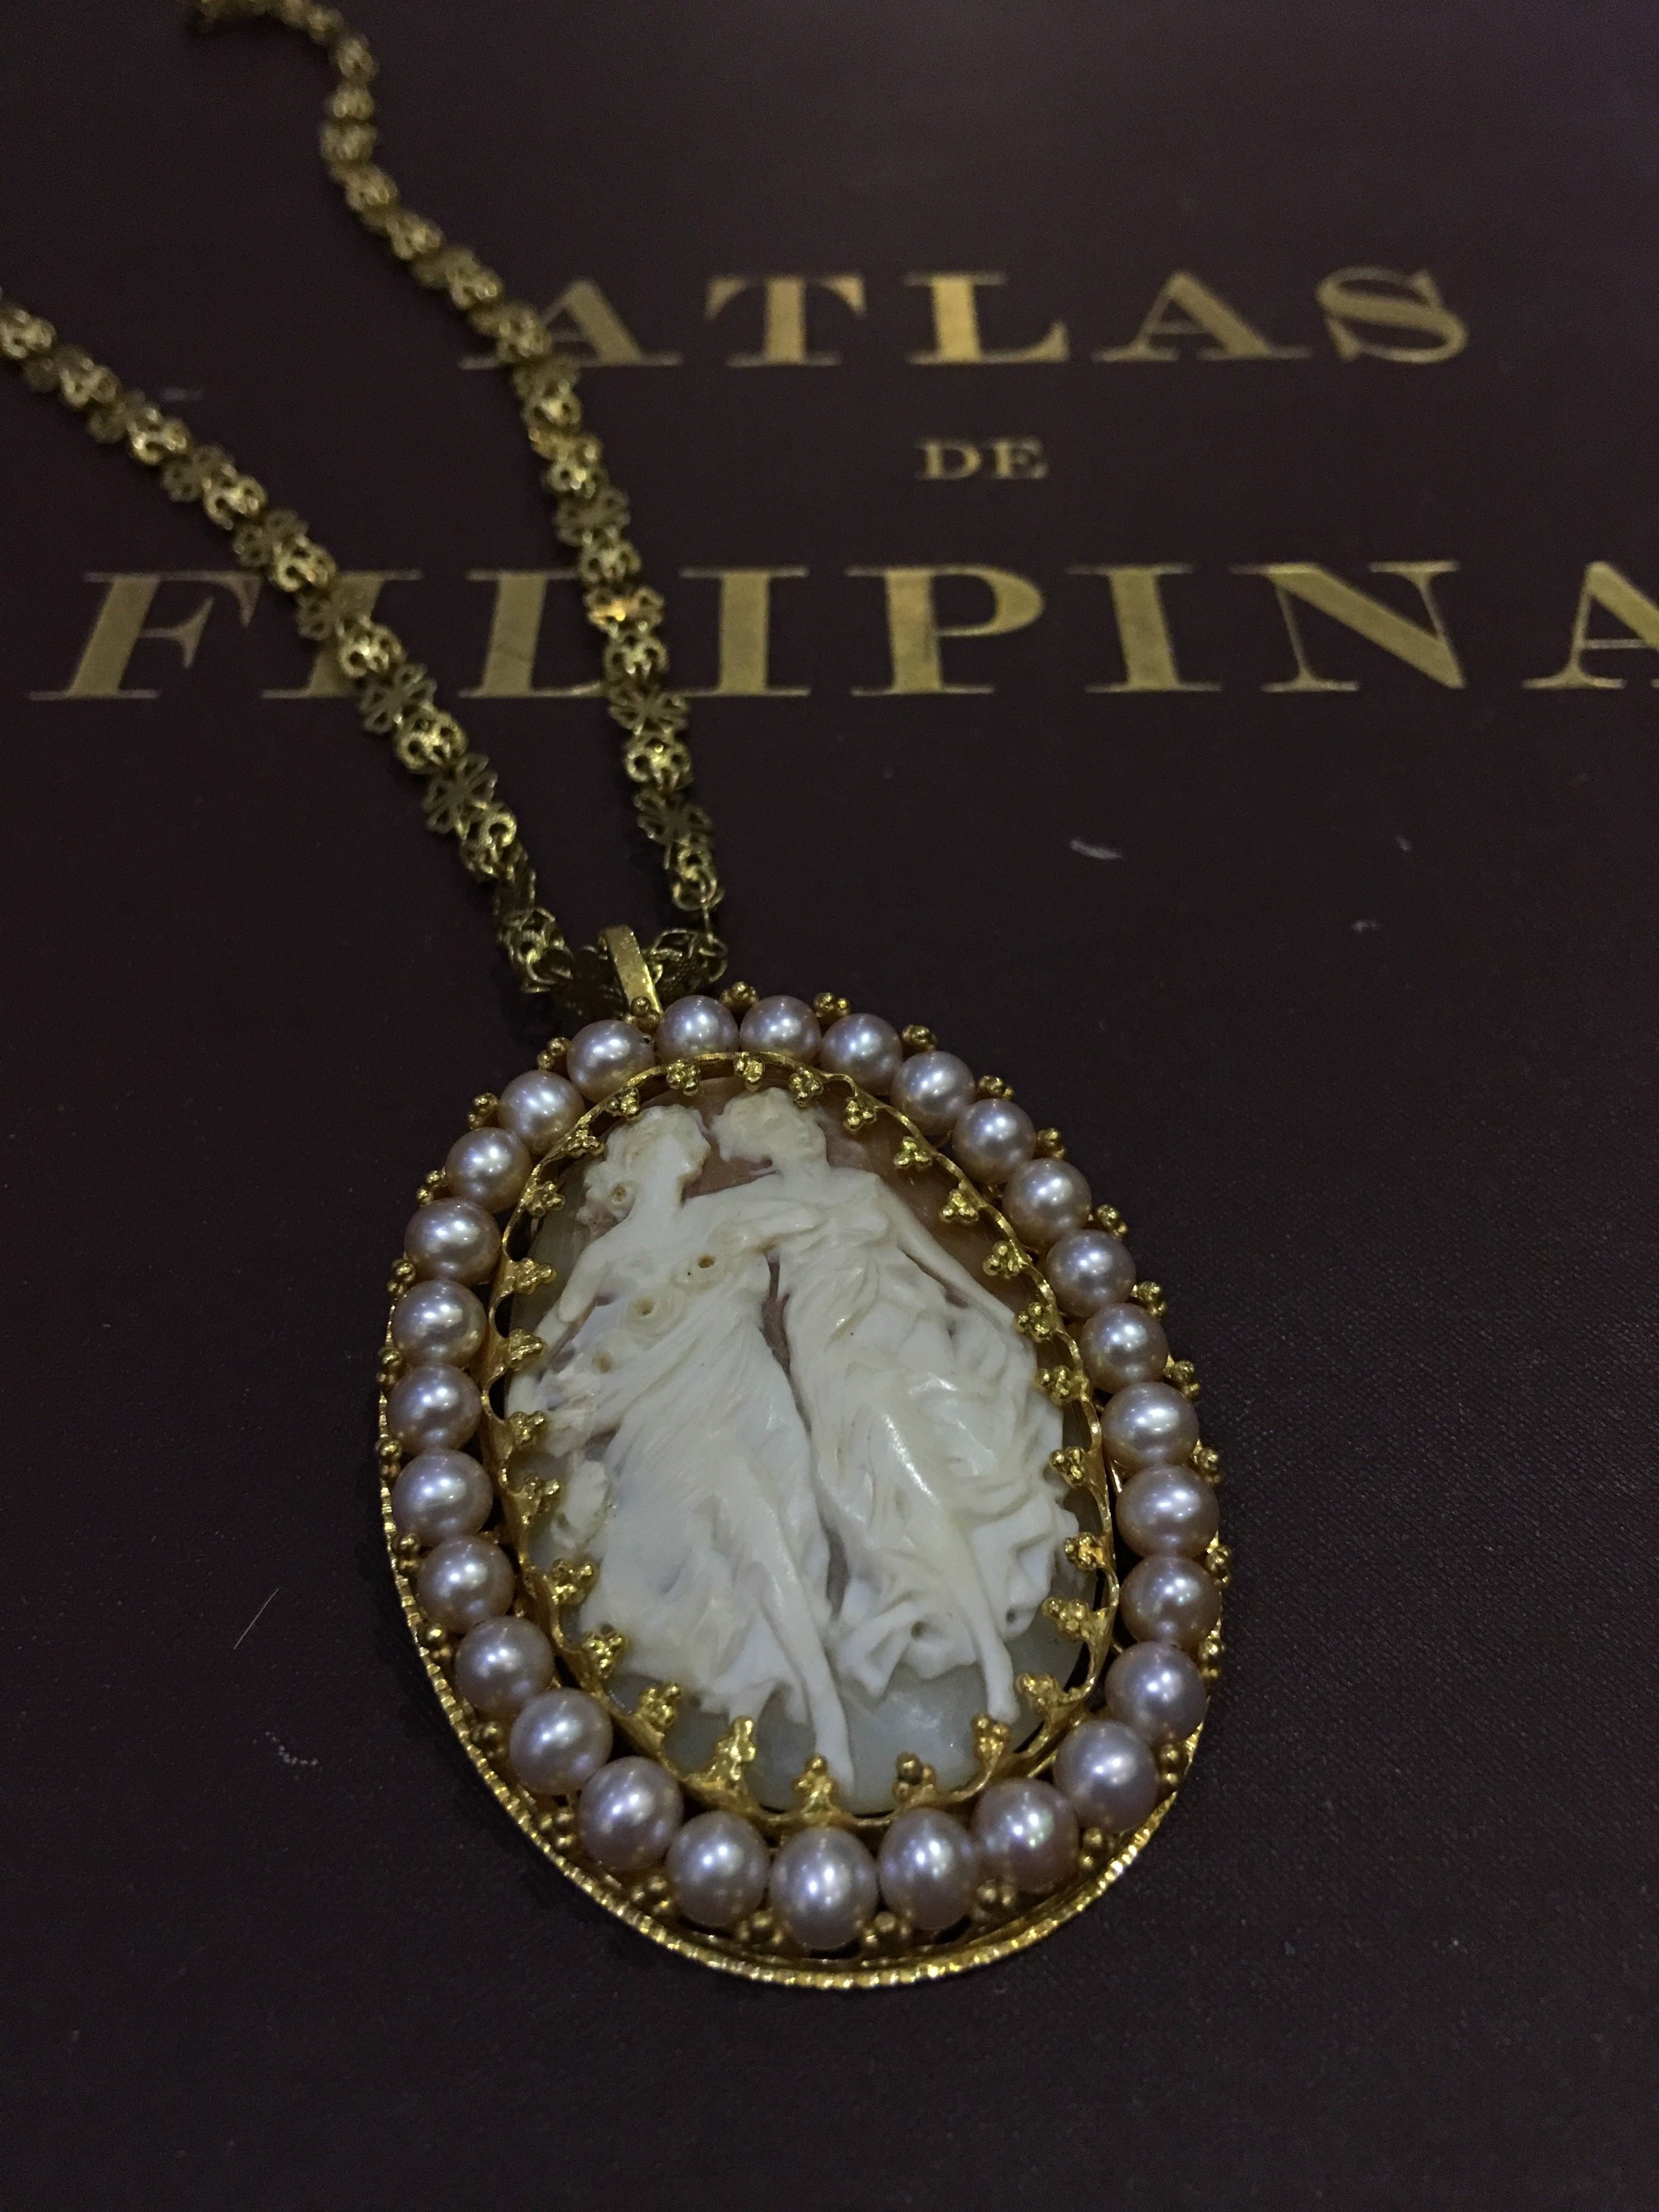 Handcarved shell Cameo Pendant of two sisters in 14K yellow gold and accentuated with white seed pearls